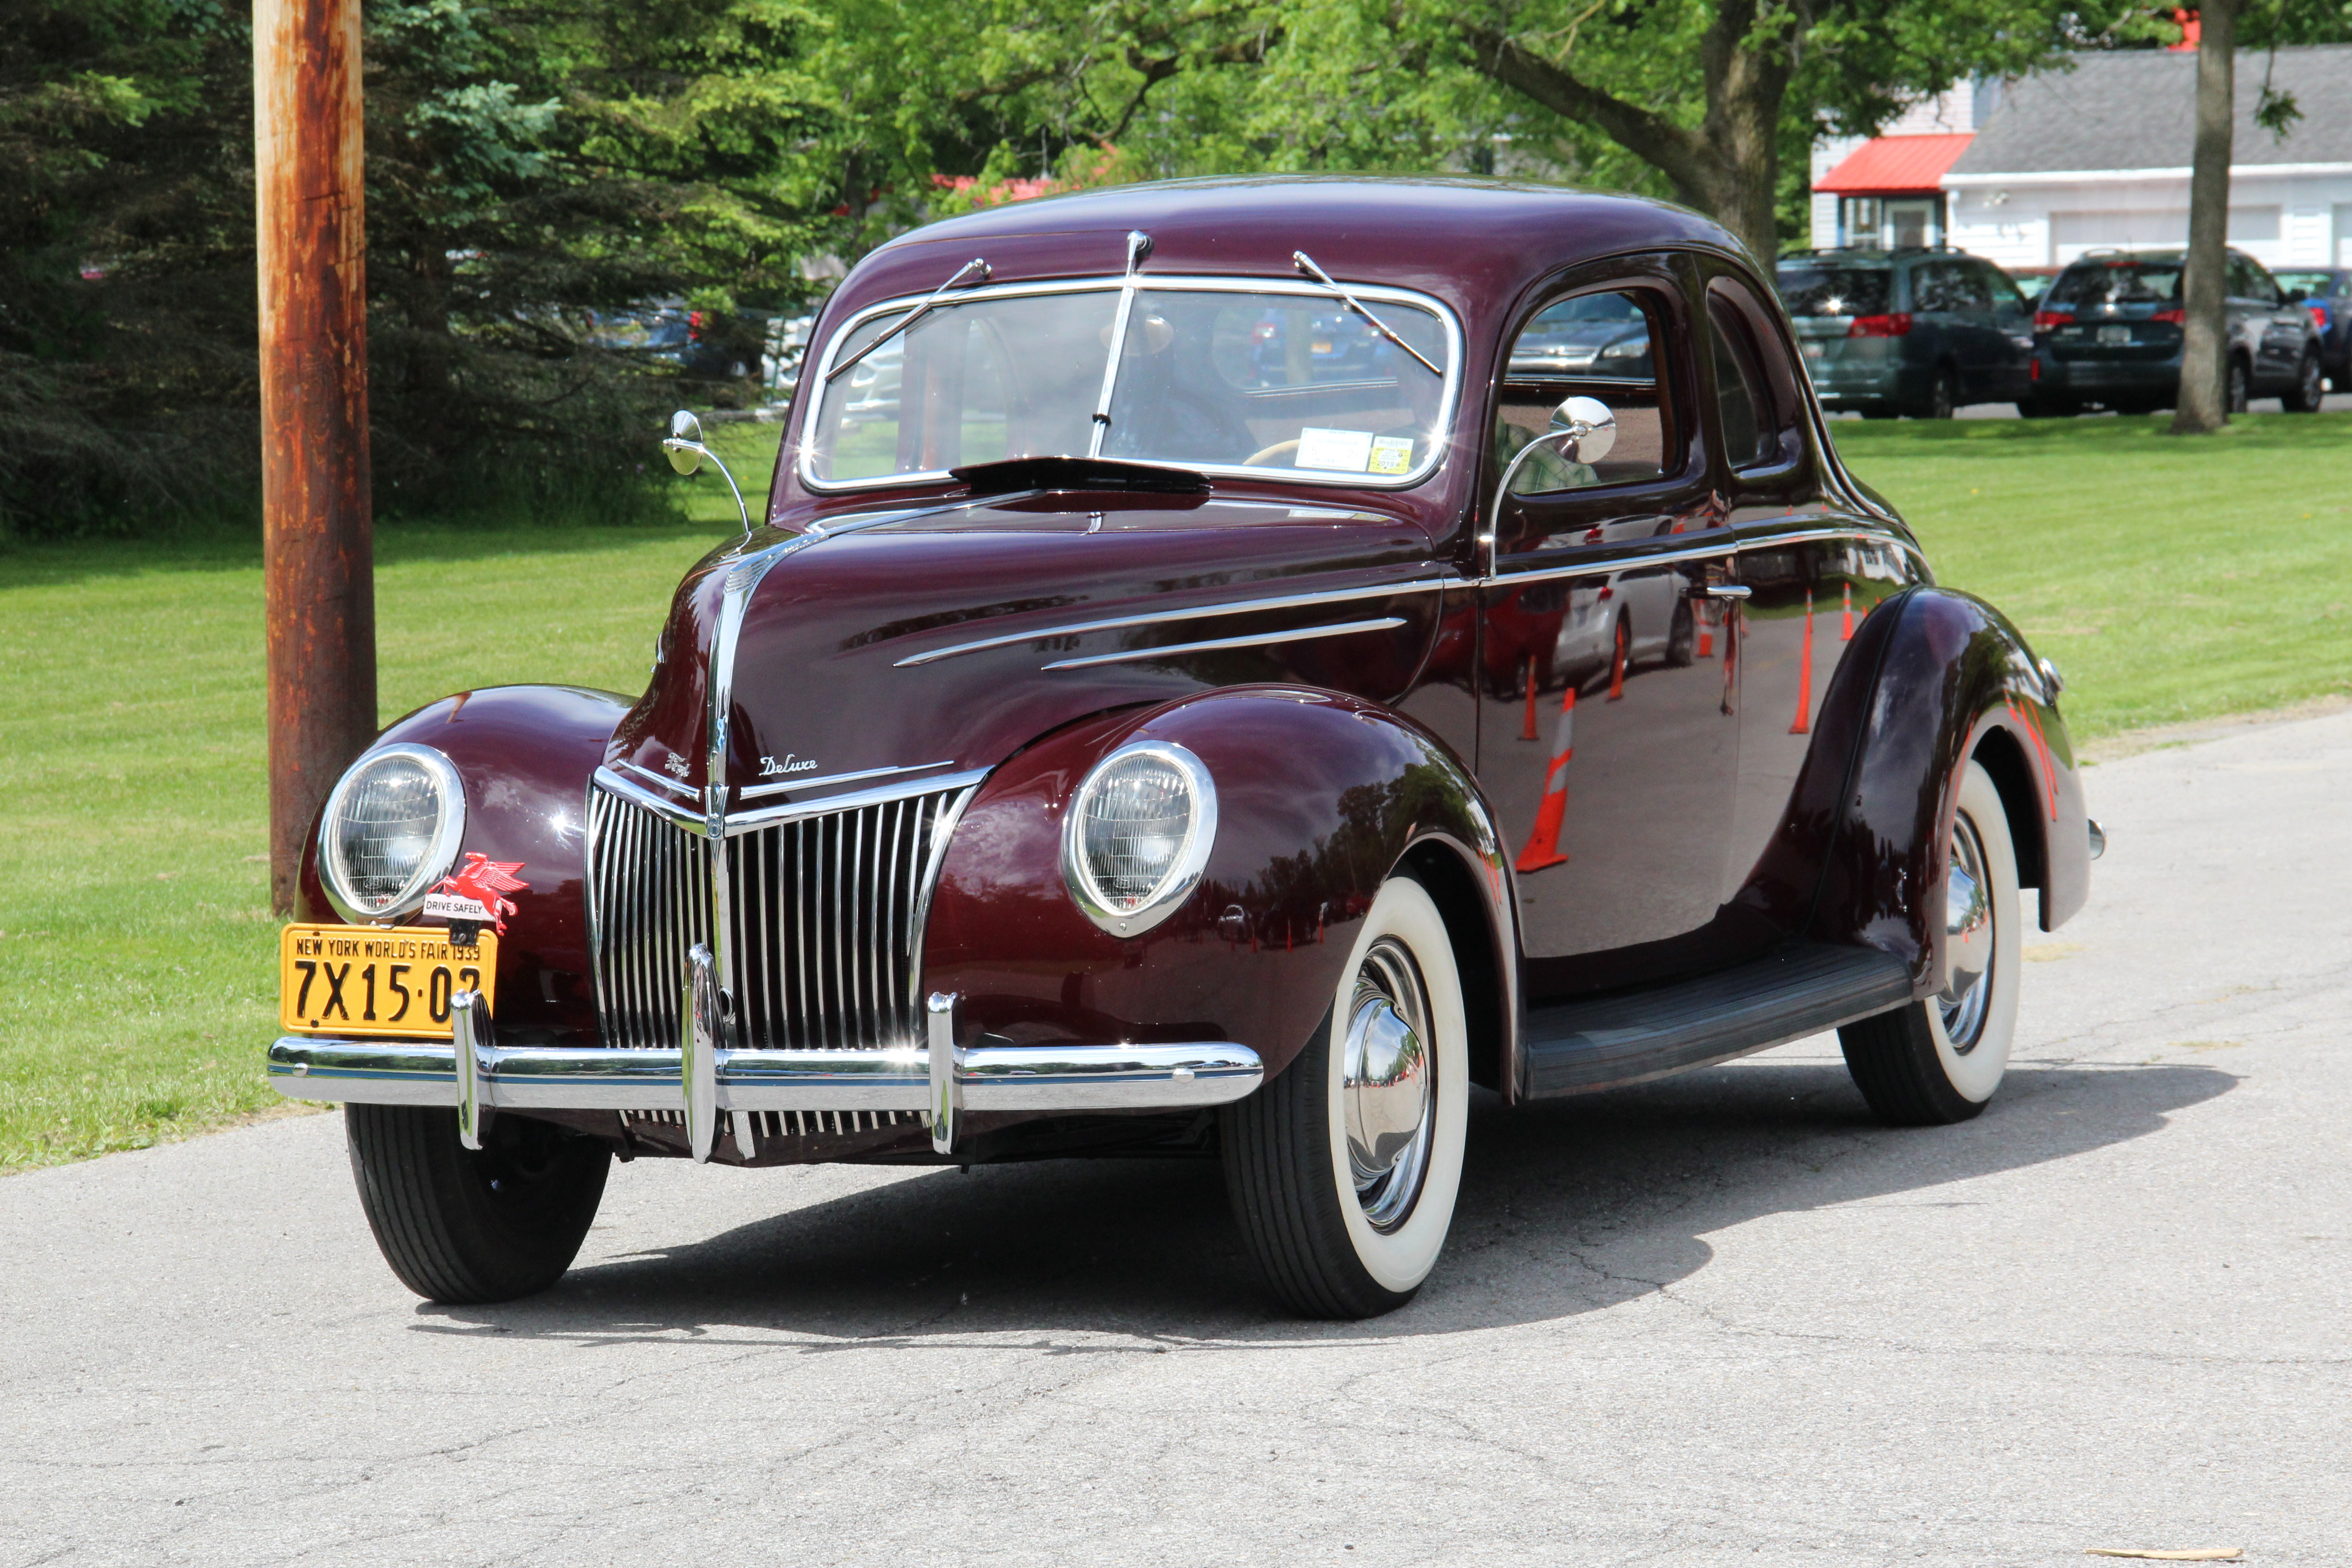 IMG_0533-Class-3-1st-David-Cook-1939-Ford-Deluxe